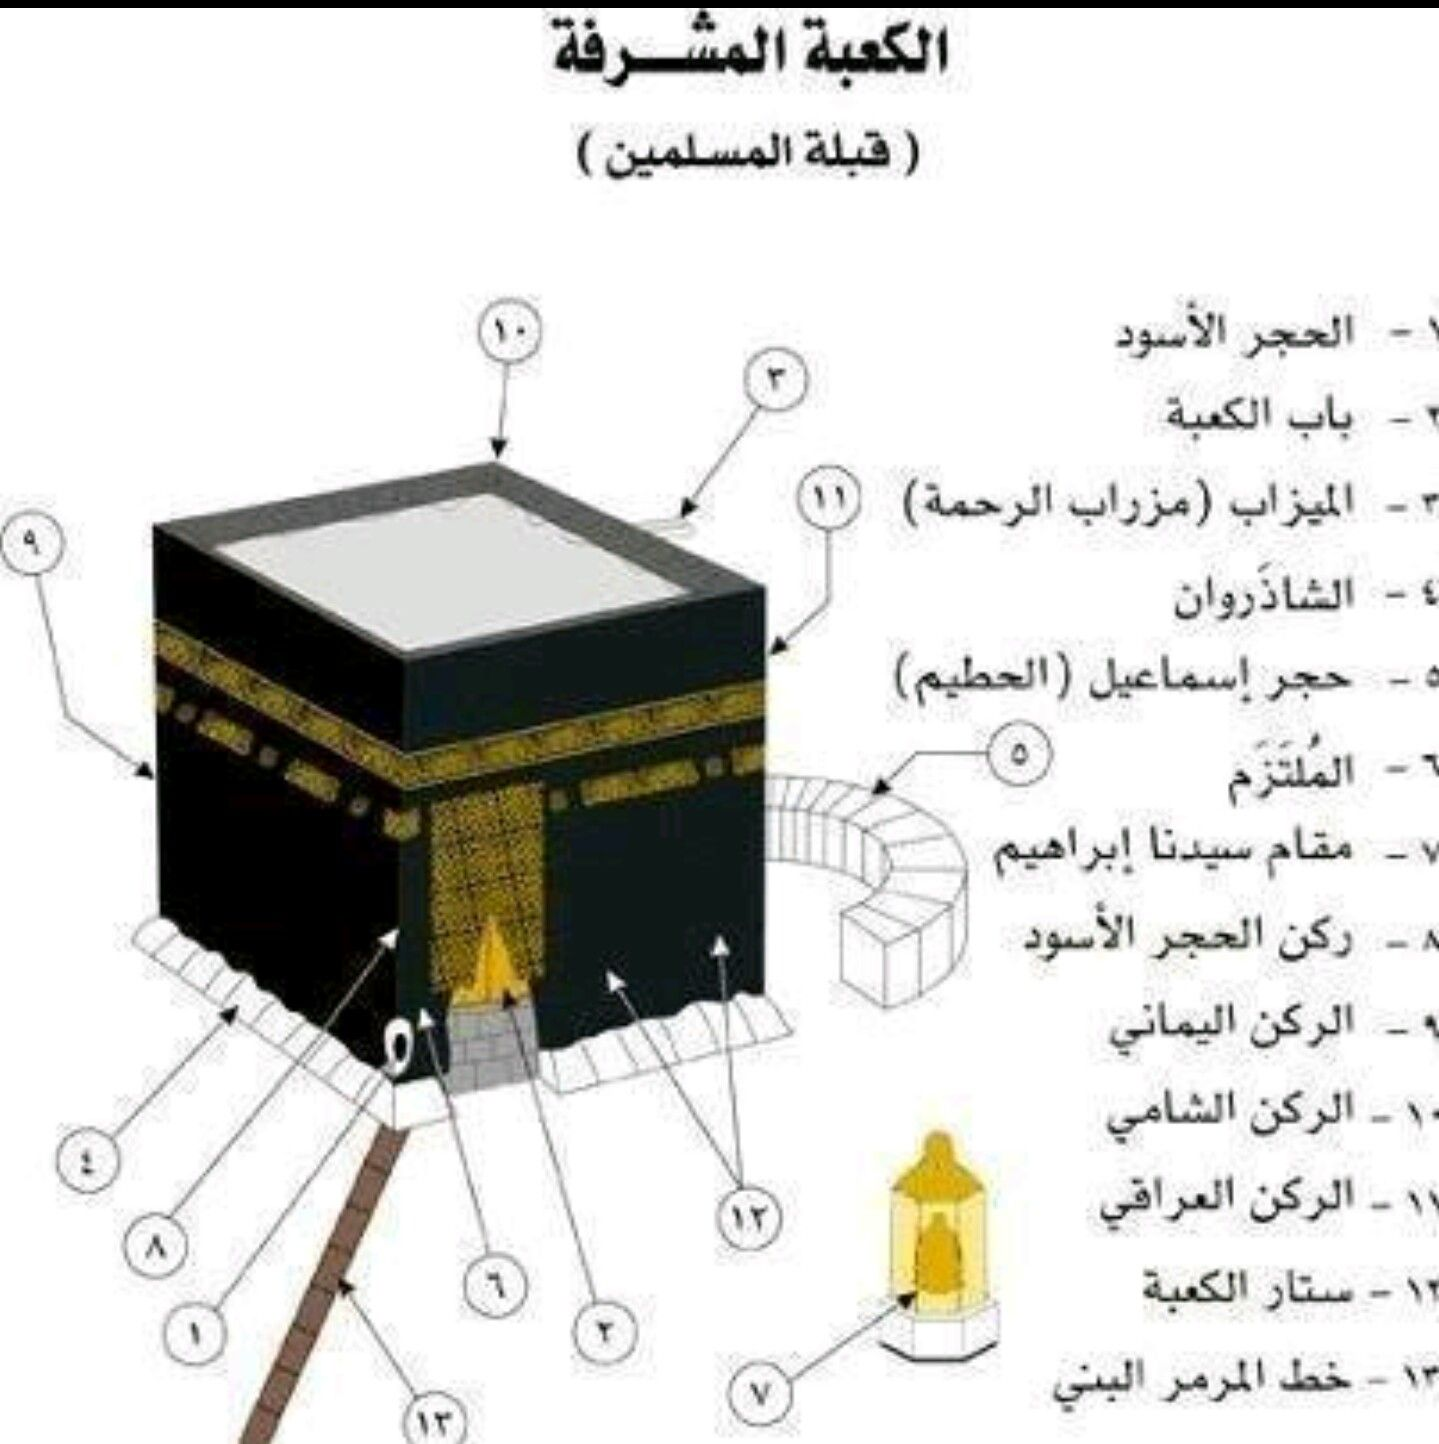 Pin By Amine On مختارات دينيه Islamic Posters Islam For Kids Islam